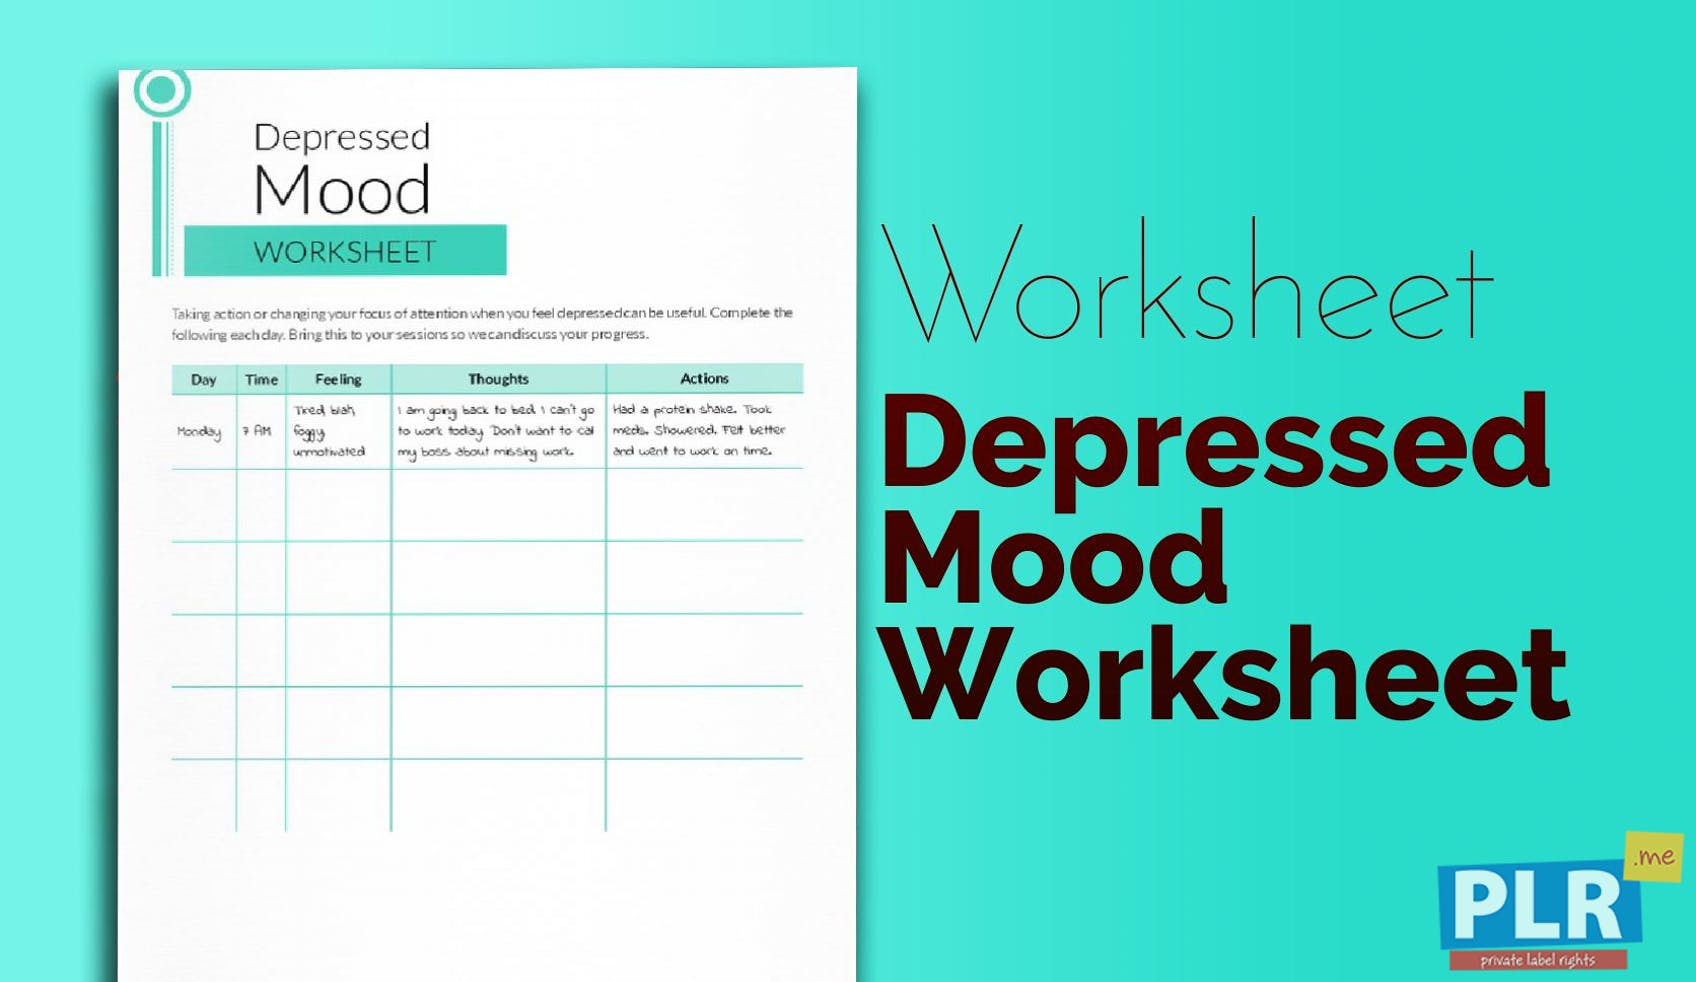 PLR Worksheets - Depressed Mood Worksheet - PLR.me